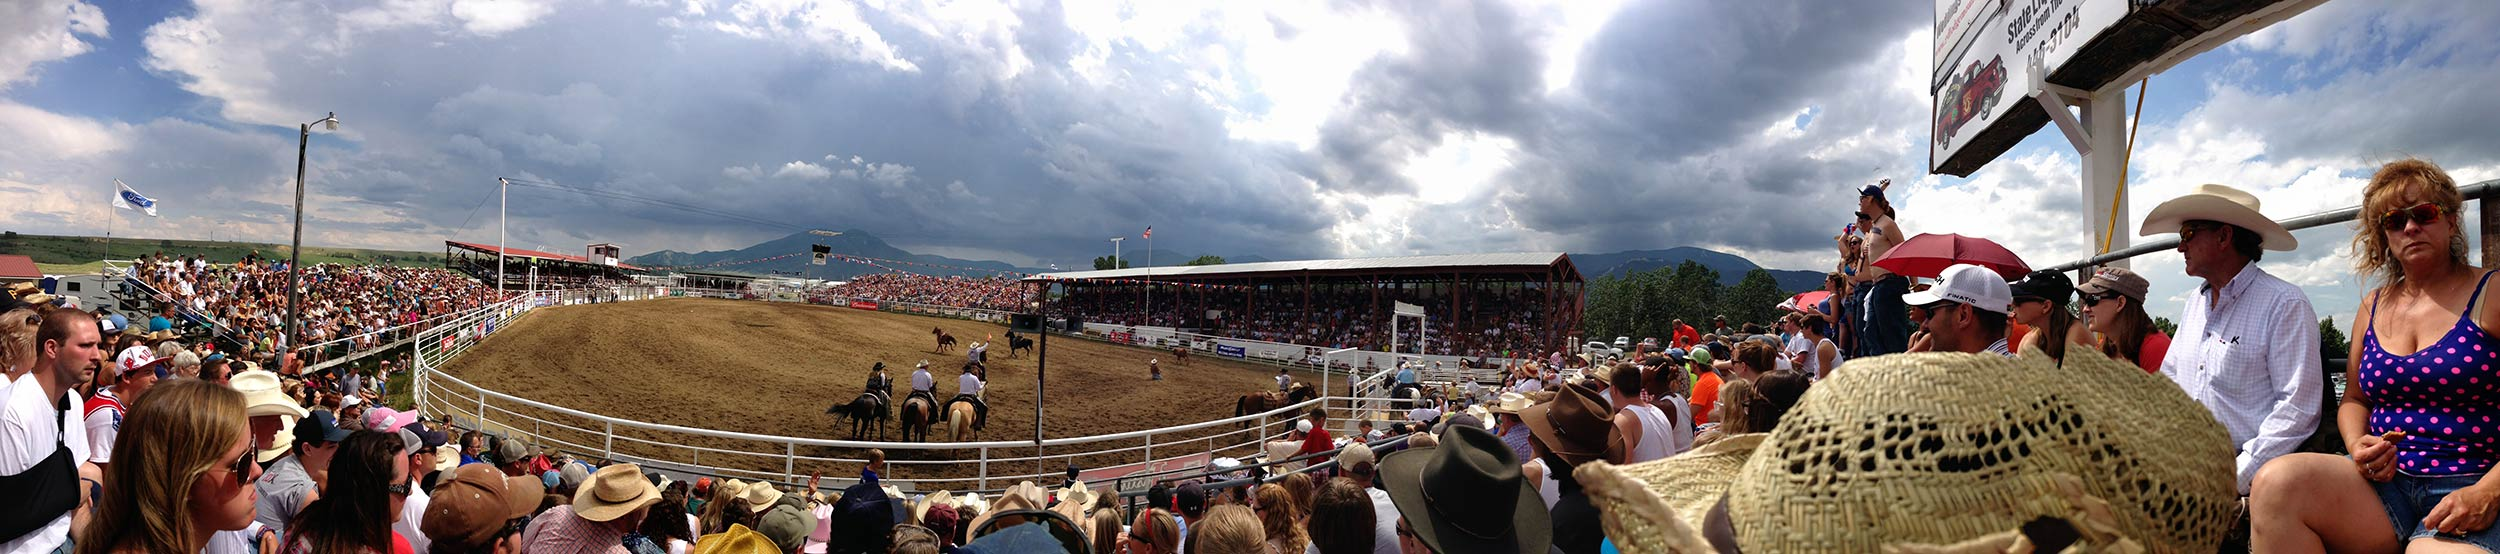 montana_red_lodge_rodeo_4th_of_july_pano.jpg